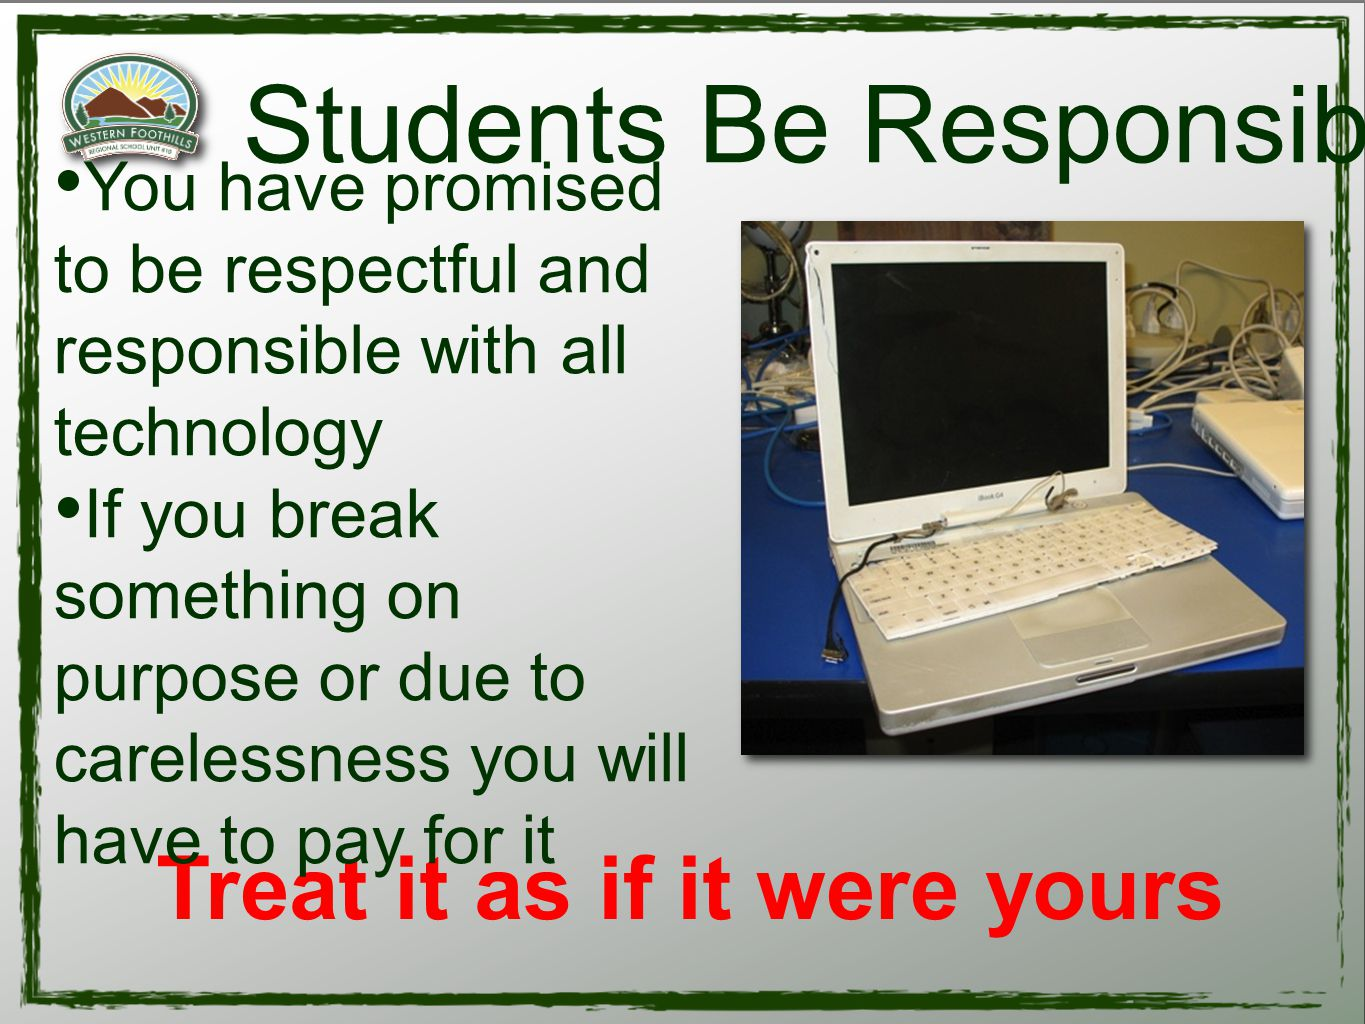 Treat it as if it were yours Students Be Responsible You have promised to be respectful and responsible with all technology If you break something on purpose or due to carelessness you will have to pay for it